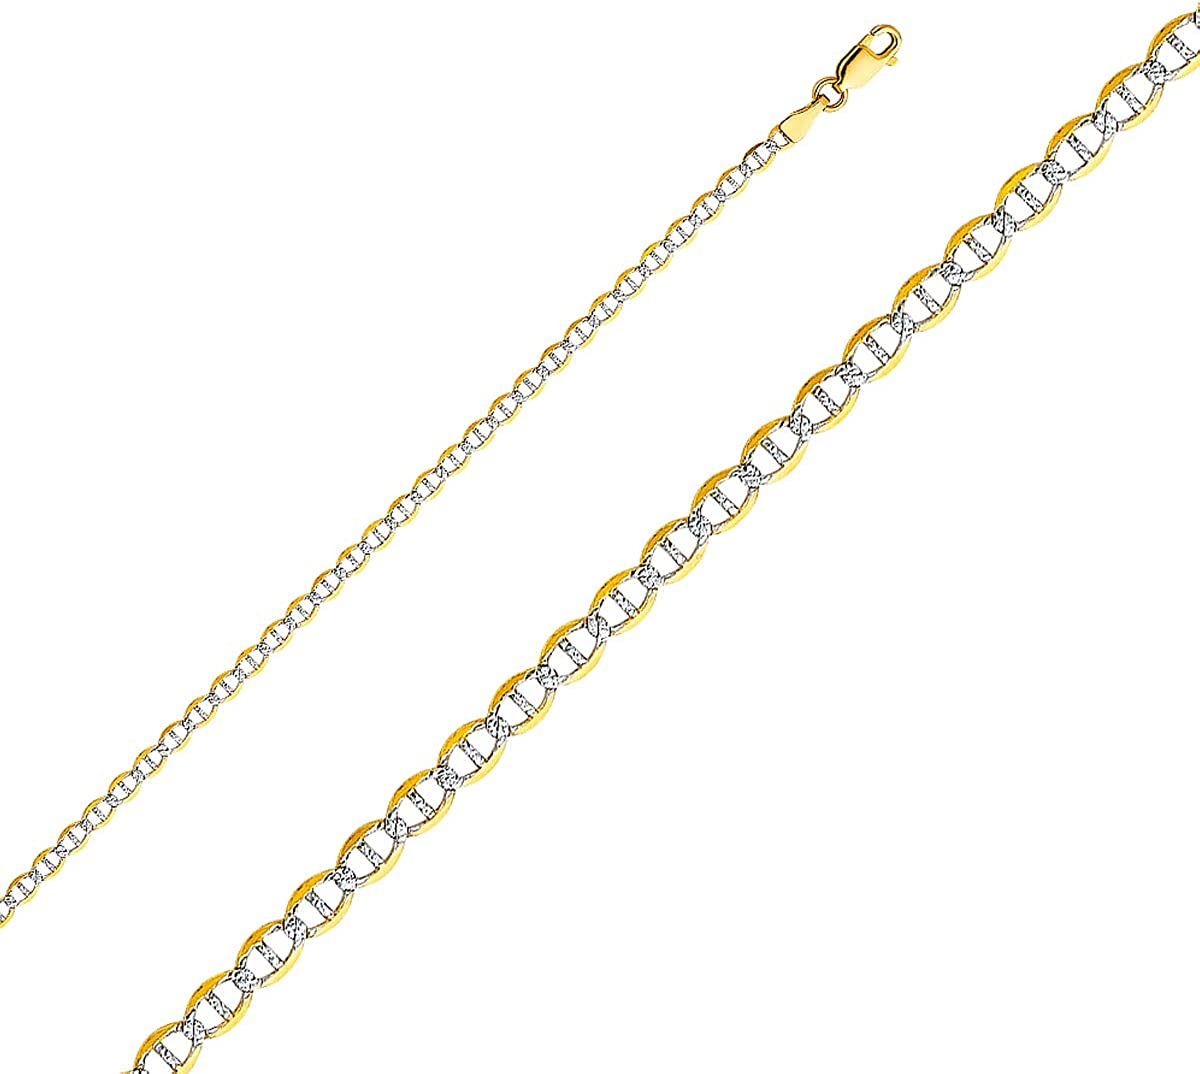 TGDJ 14k Yellow Gold Solid 3.4mm Flat Mariner Chain Necklace with Lobster Claw Clasp